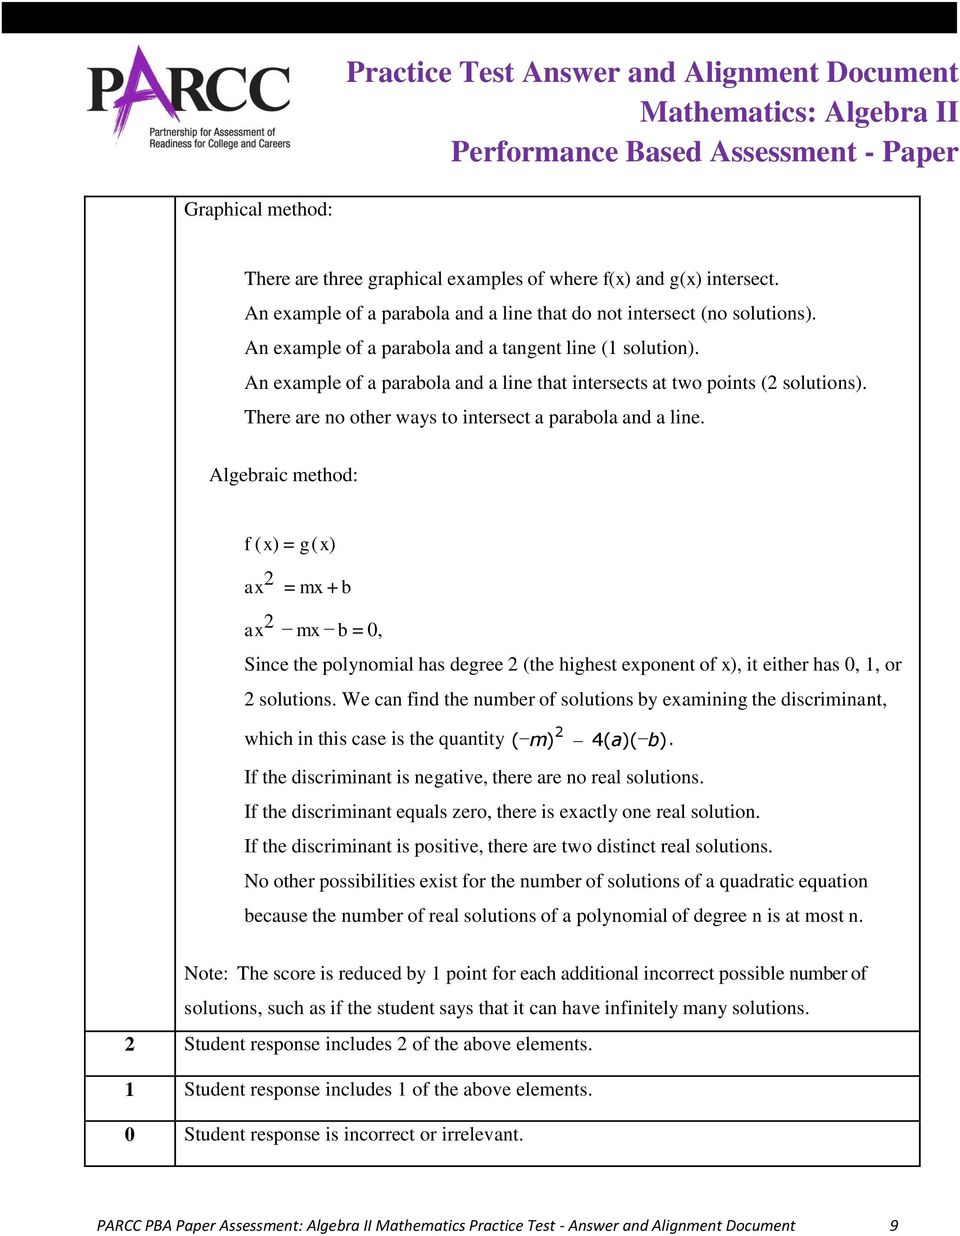 Practice Test Answer and Alignment Document Mathematics: Algebra II